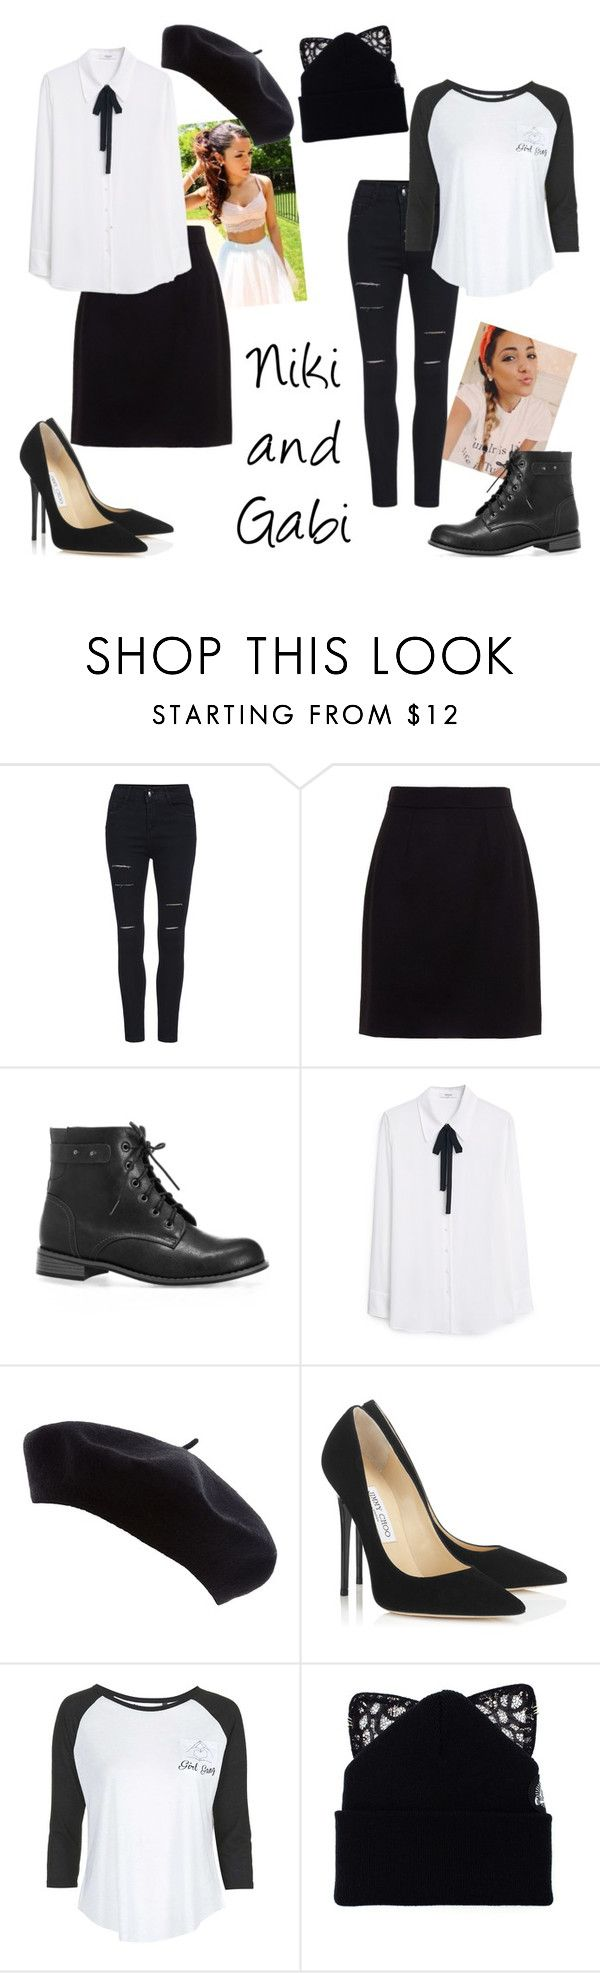 """""""Niki And Gabi Inspired: Black and White"""" by hermoinegranger ❤ liked on Polyvore featuring Dolce&Gabbana, Avenue, MANGO, Jimmy Choo, Topshop, Silver Spoon Attire and nikiandgabi"""